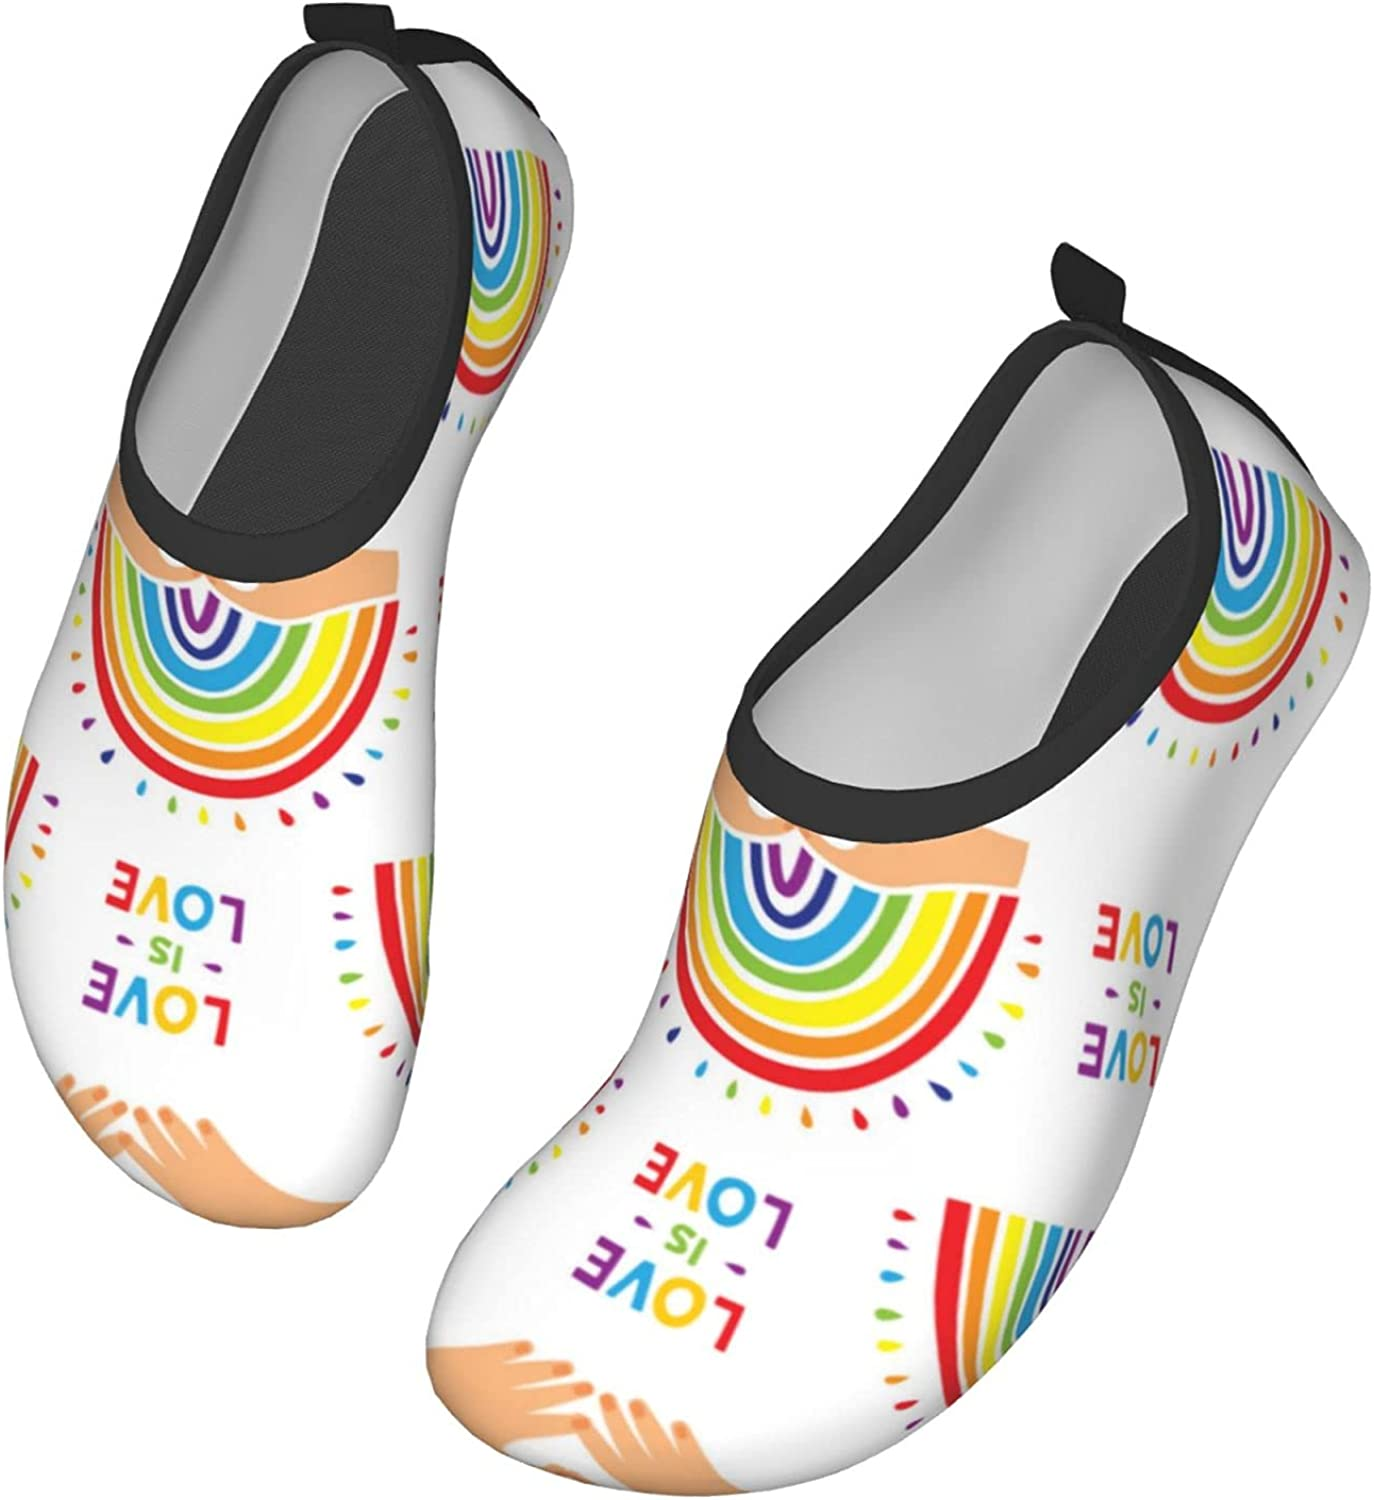 Love is Love Rainbow Water Shoes Women's Men's Outdoor Beach Swimming Aqua Socks Quick-Dry Barefoot Shoes Surfing Yoga Pool Exercise